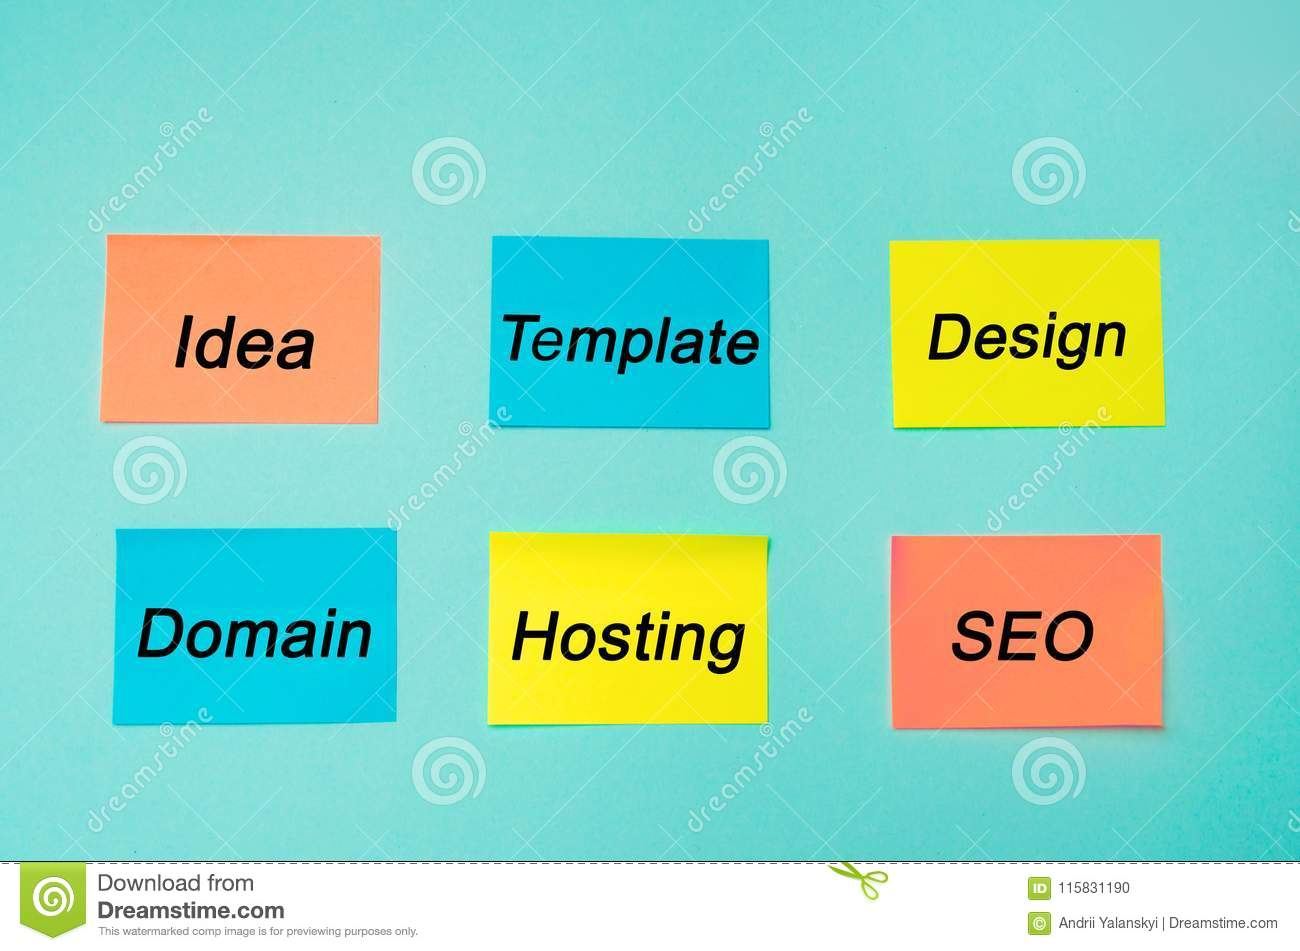 Website Plan And Project Seo Process Information Flow Chart Design Scheme Business Concept Profession Programmer Stickers In Stock Photo Image Of Management Content 115831190